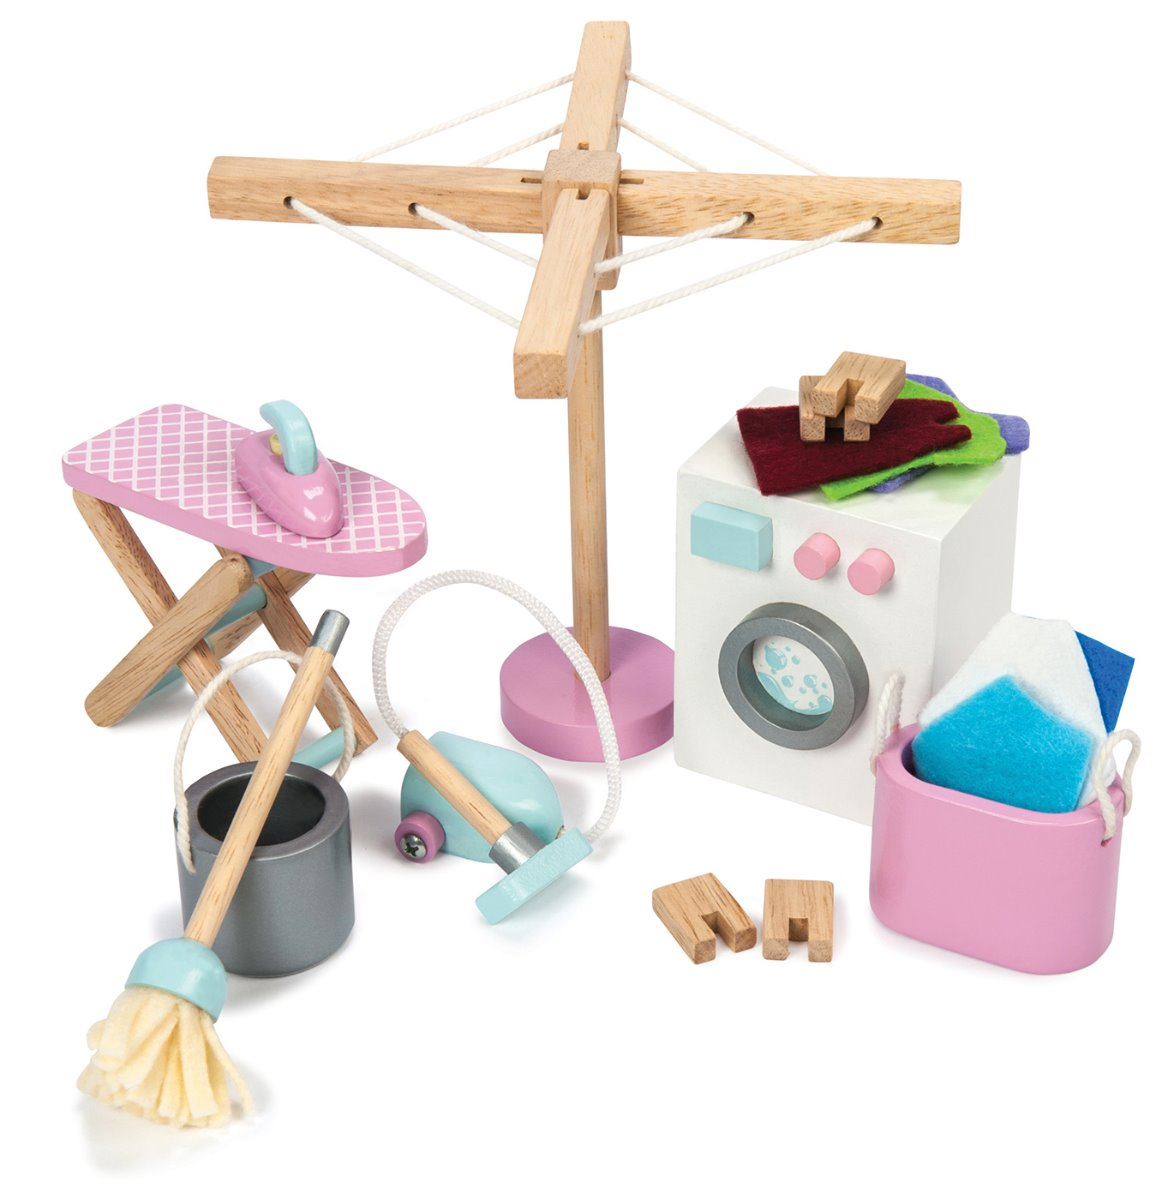 Le Toy Van - Daisylane Laundry Set